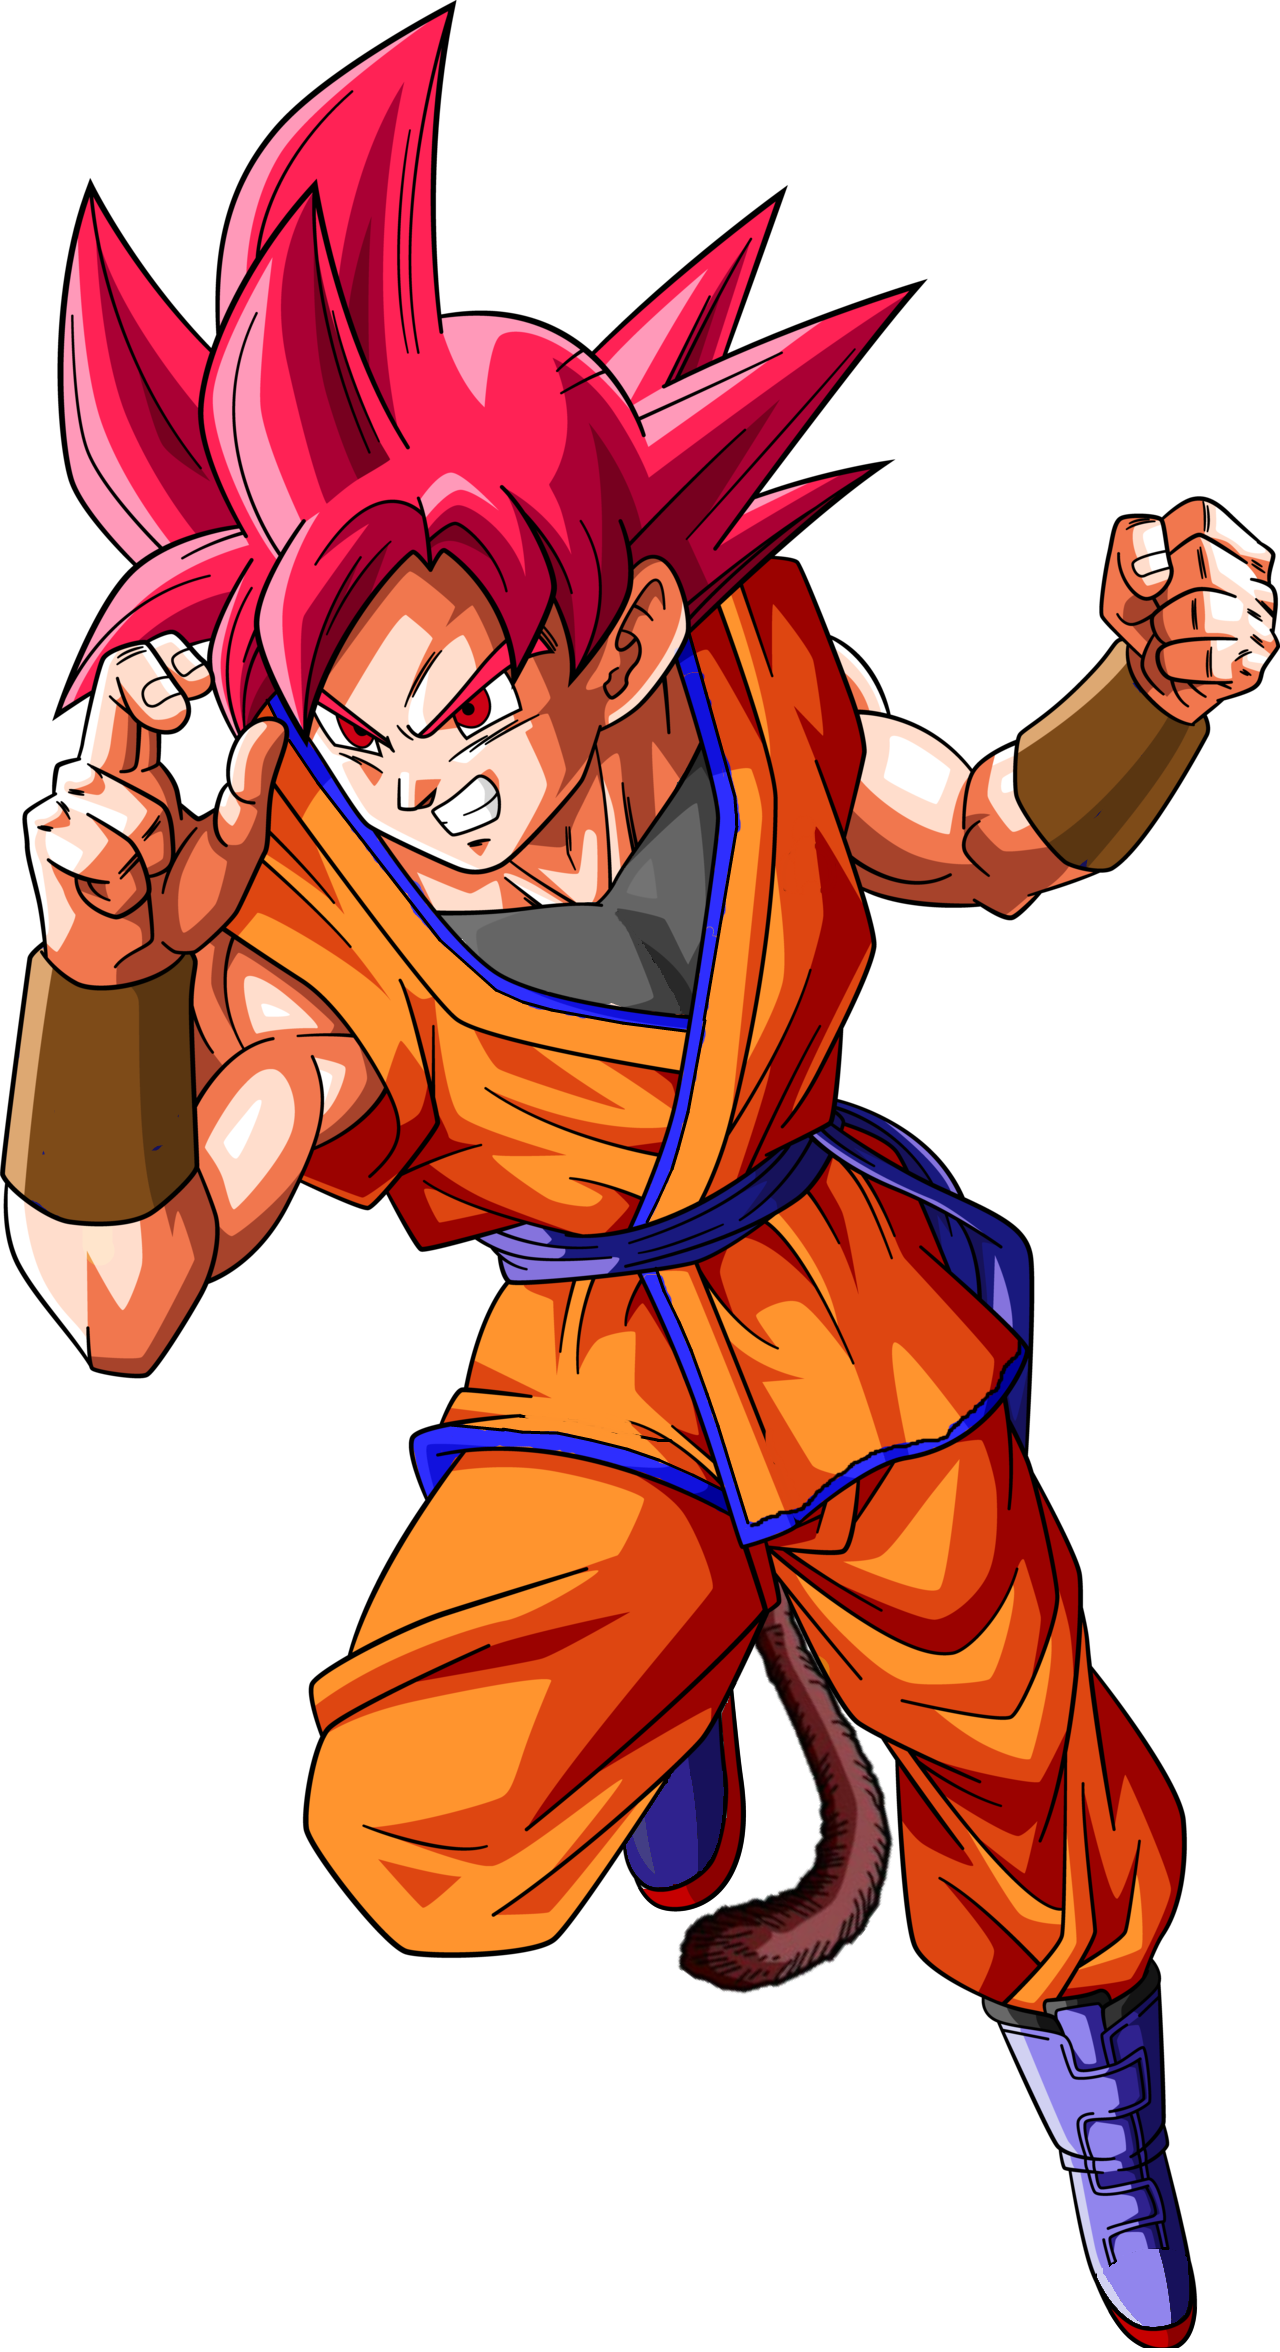 Goku super saiyan god 2 png. Image jr dragonball dragon